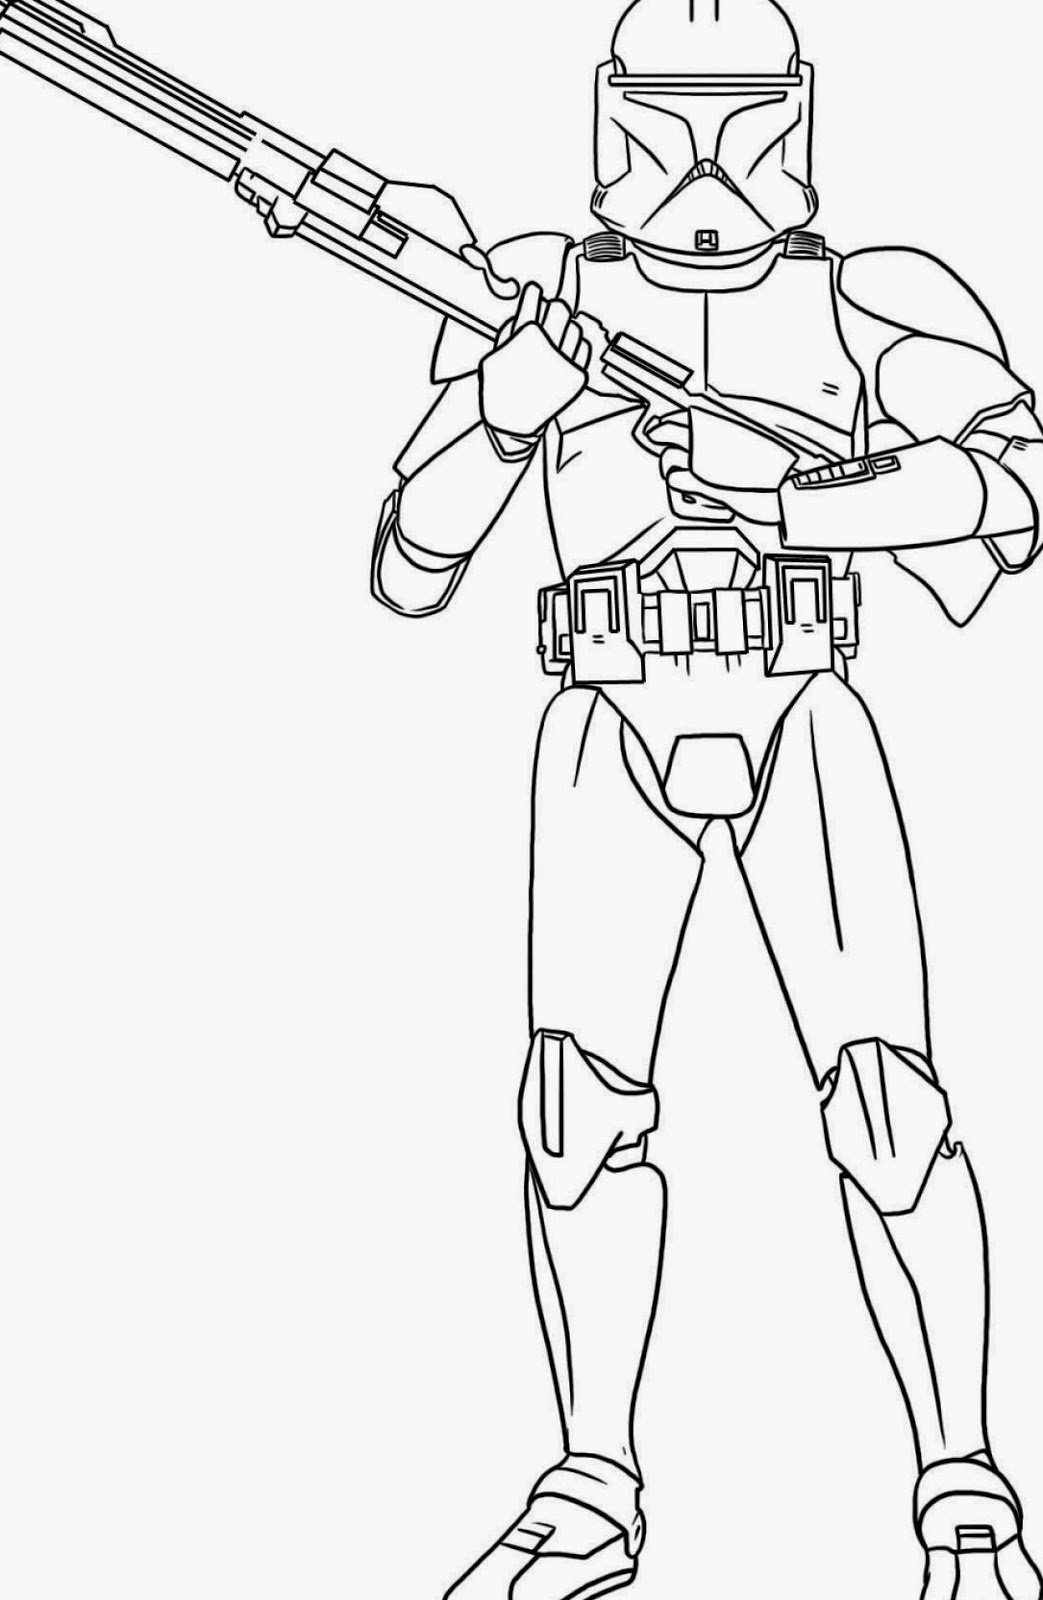 color pages star wars coloring pages star wars free printable coloring pages wars pages star color